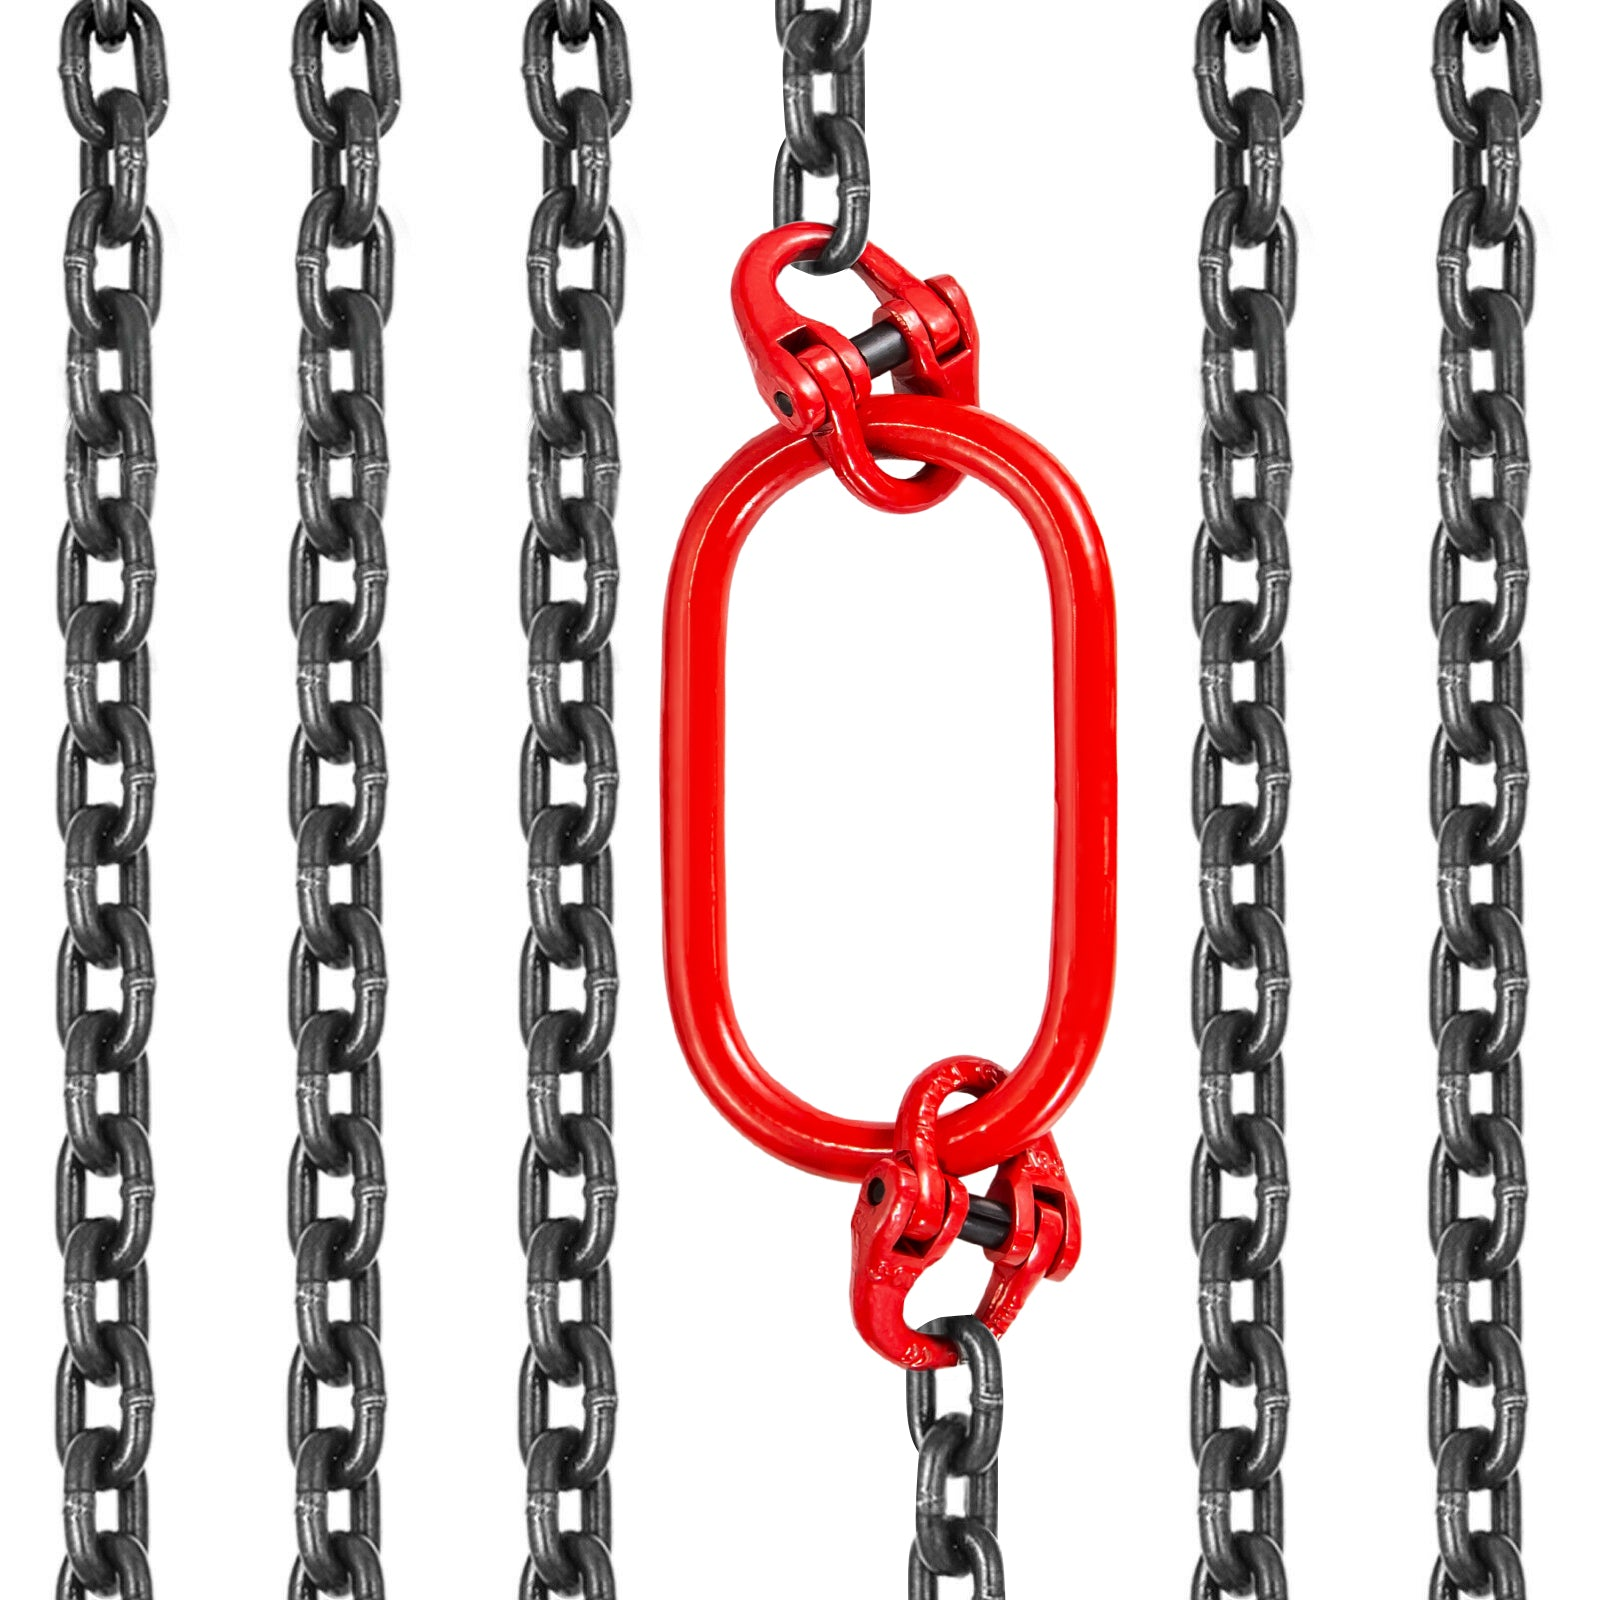 4m Double Leg Lifting Chain Sling Grade 80 Wll 2.6t Long Service Life